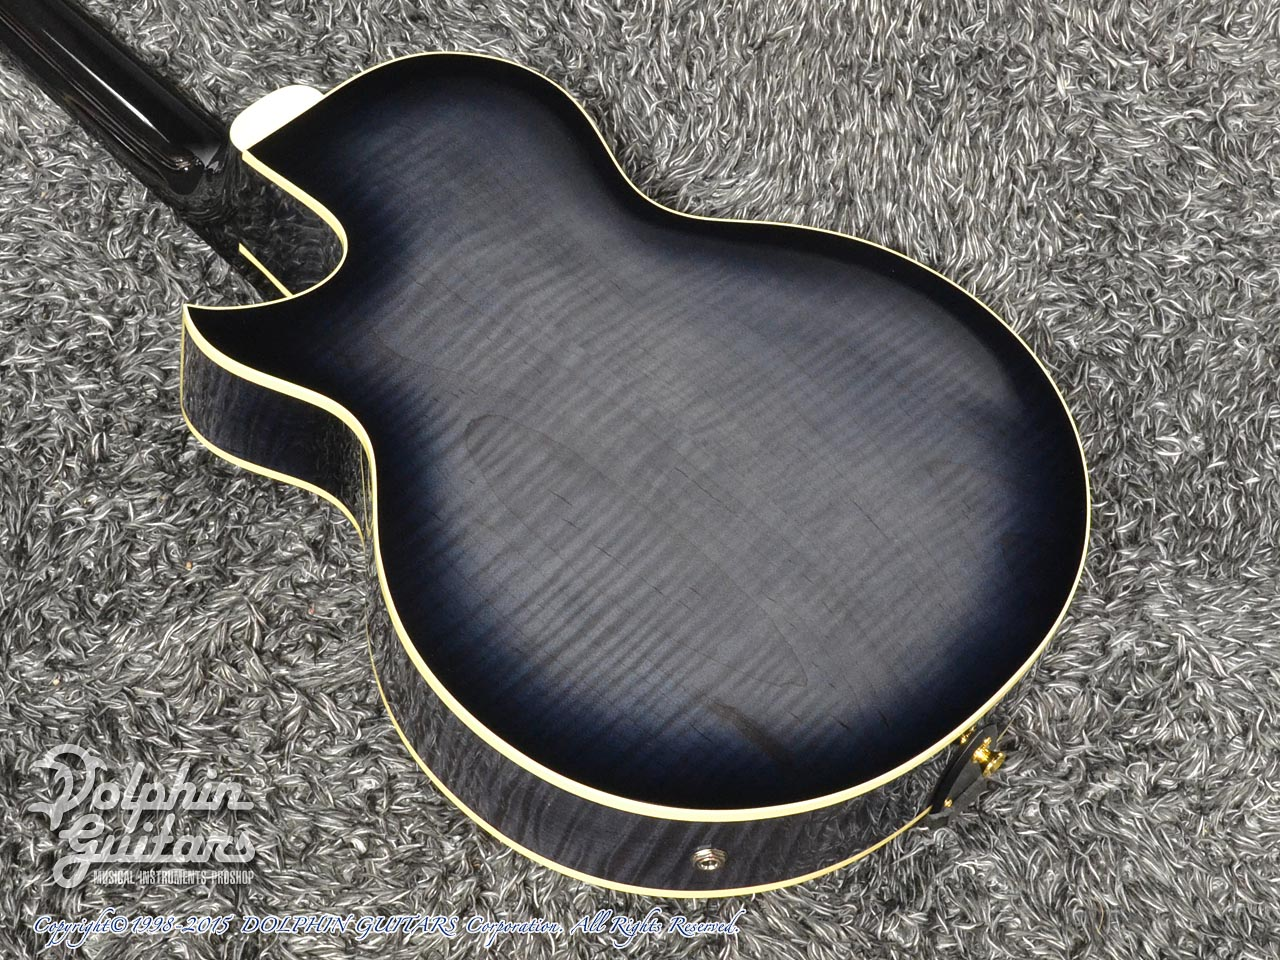 SAITO GUITARS: M35SMM (Trans Black) (3)